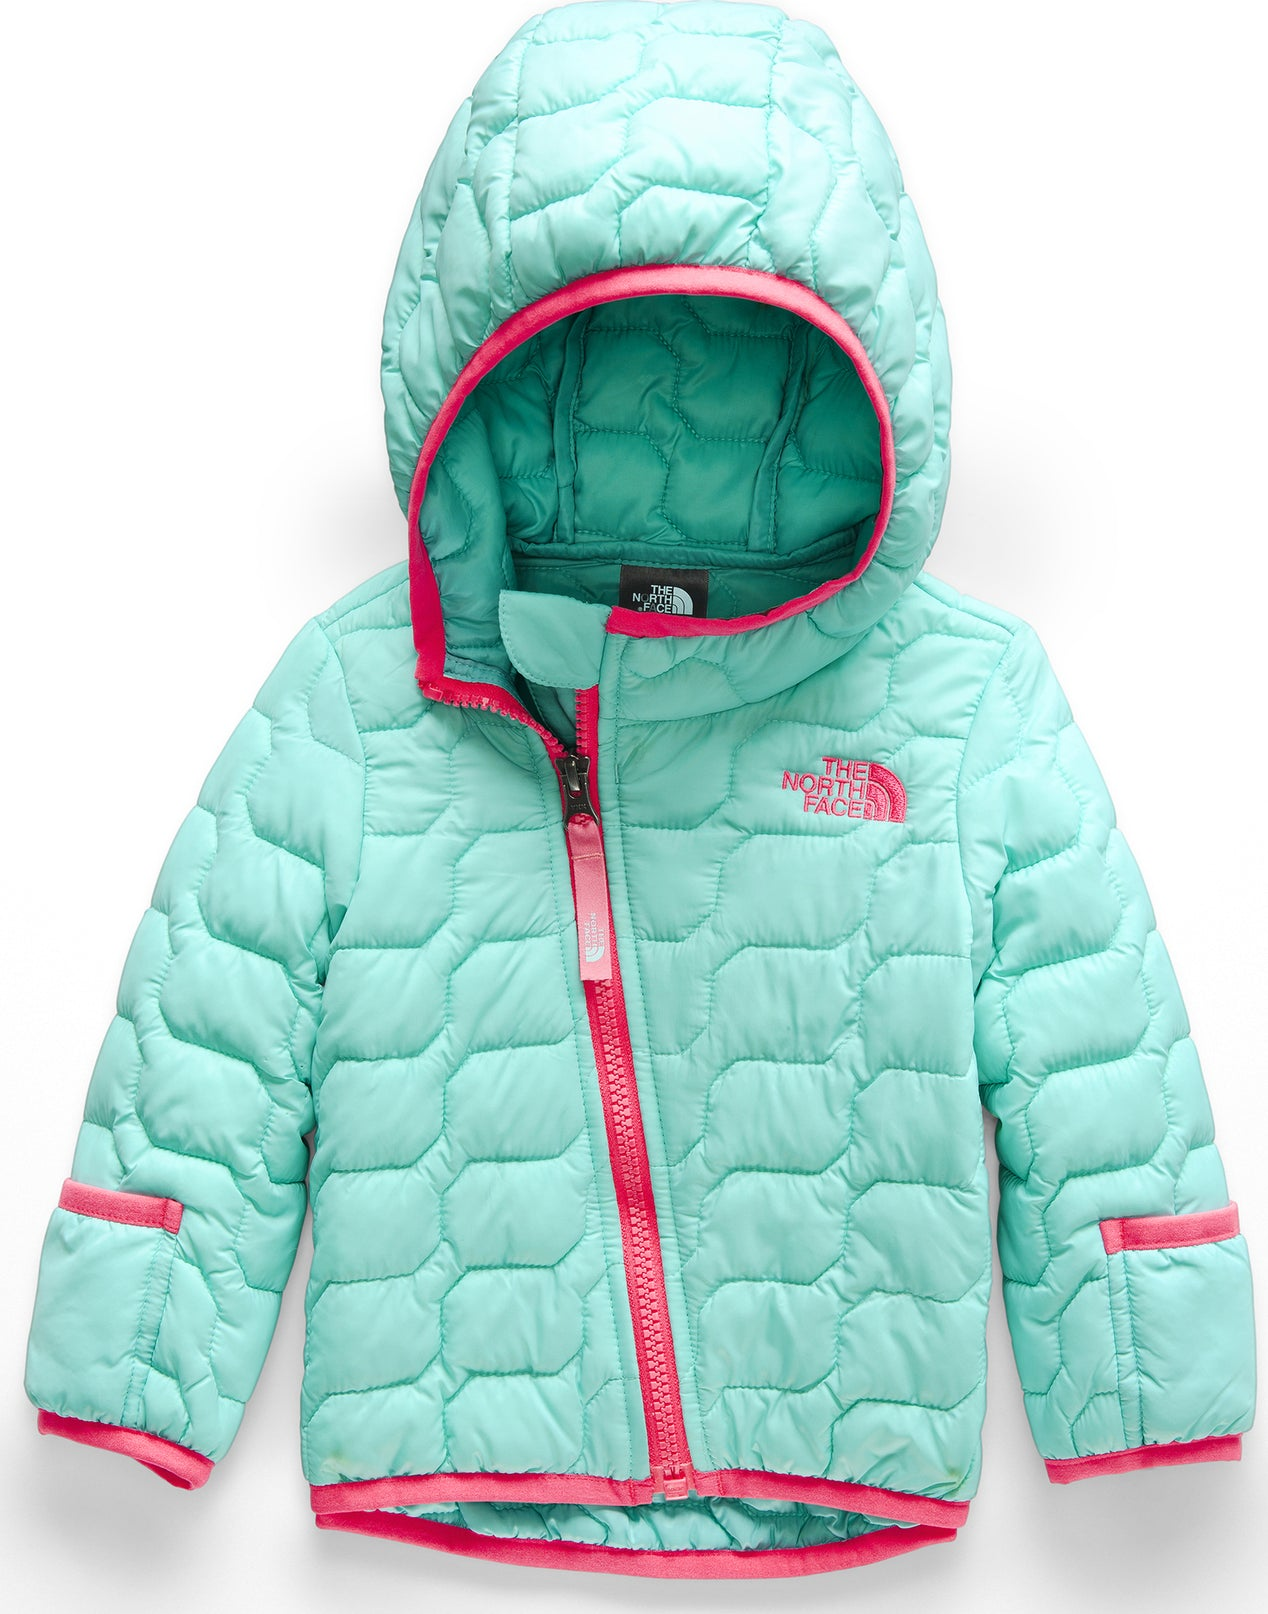 e07a05d89 The North Face ThermoBall Hoodie - Infant